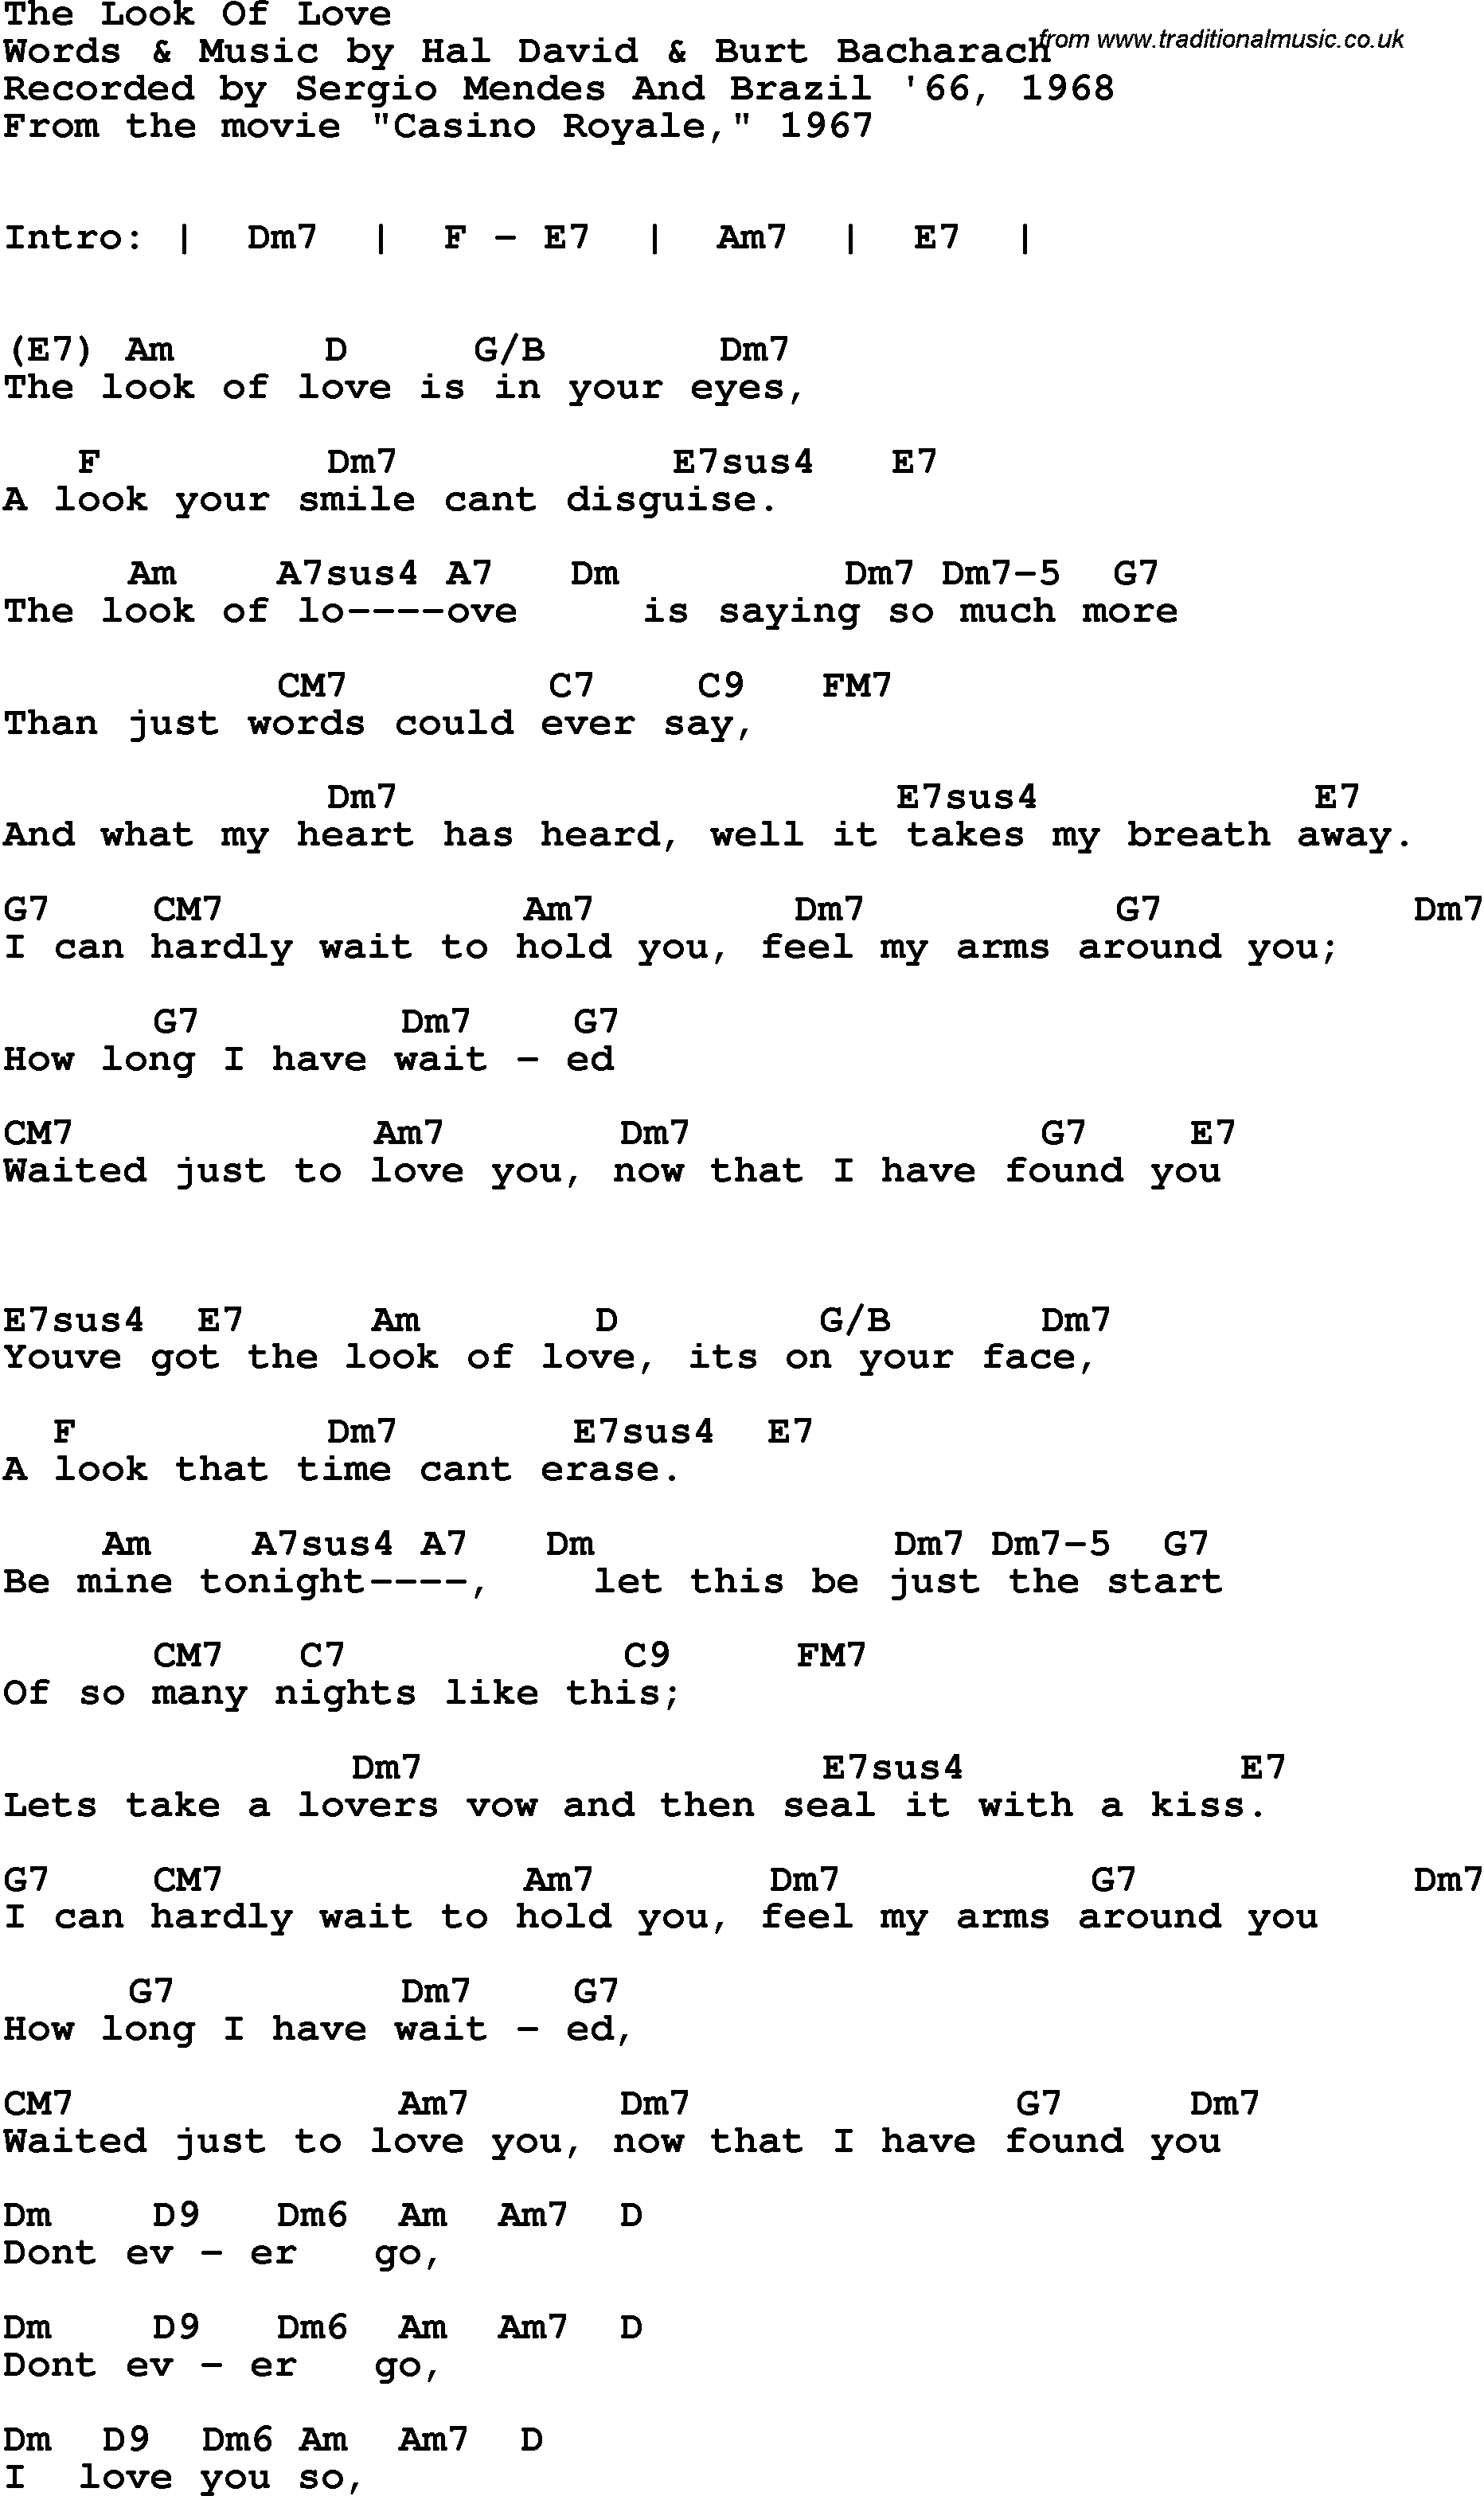 Song lyrics with guitar chords for Look Of Love - The - Sergio Mendes u0026 Brazil u0026#39;66, 1968